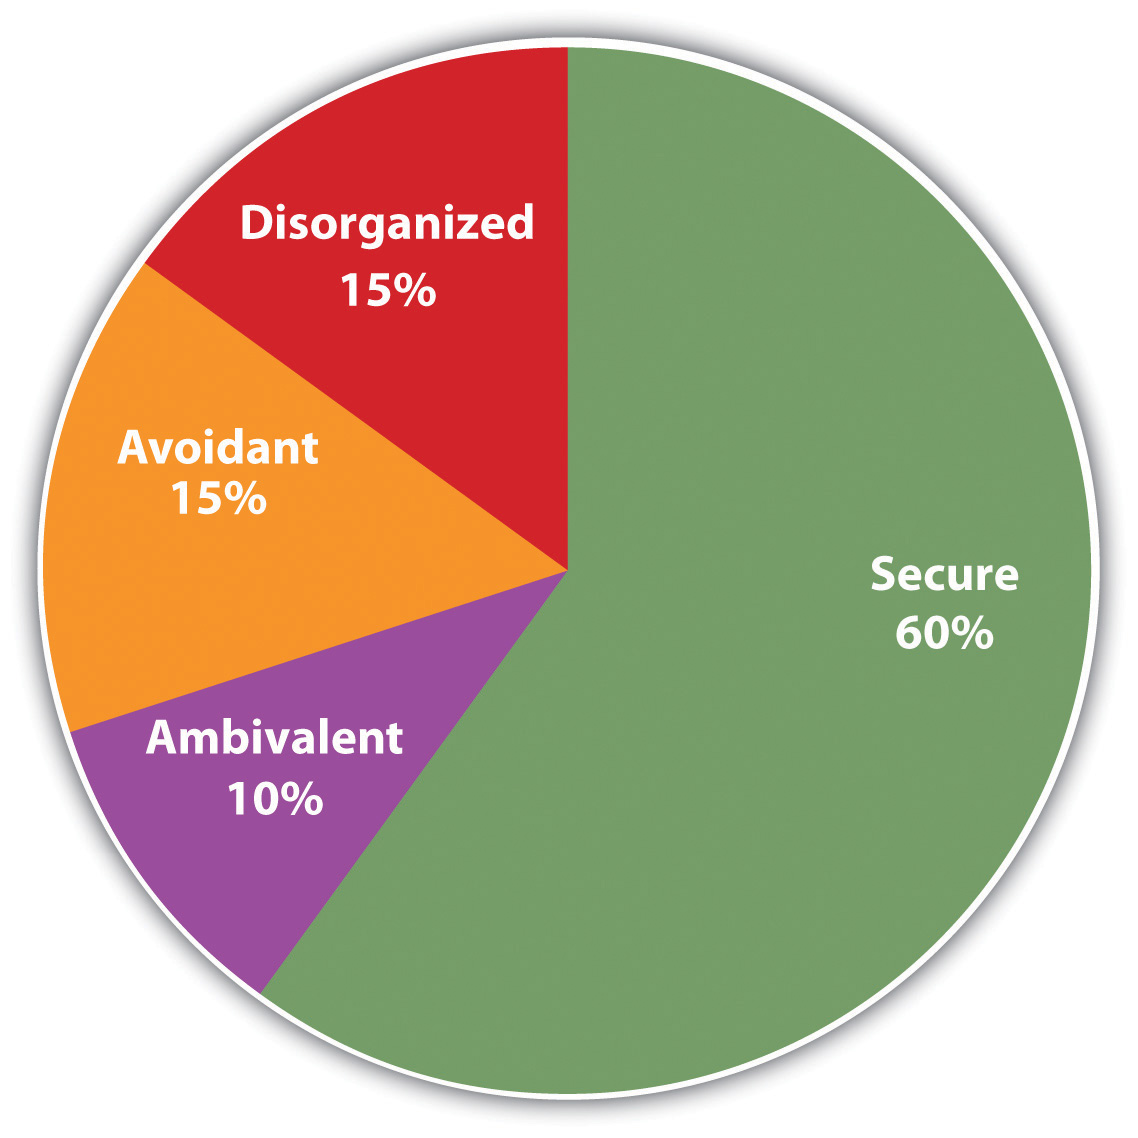 The graph shows the approximate proportion of children who have each of the four attachment styles. These proportions are fairly constant across cultures: 60% secure, 15% disorganized, 15% avoidant, and 10% ambivalent